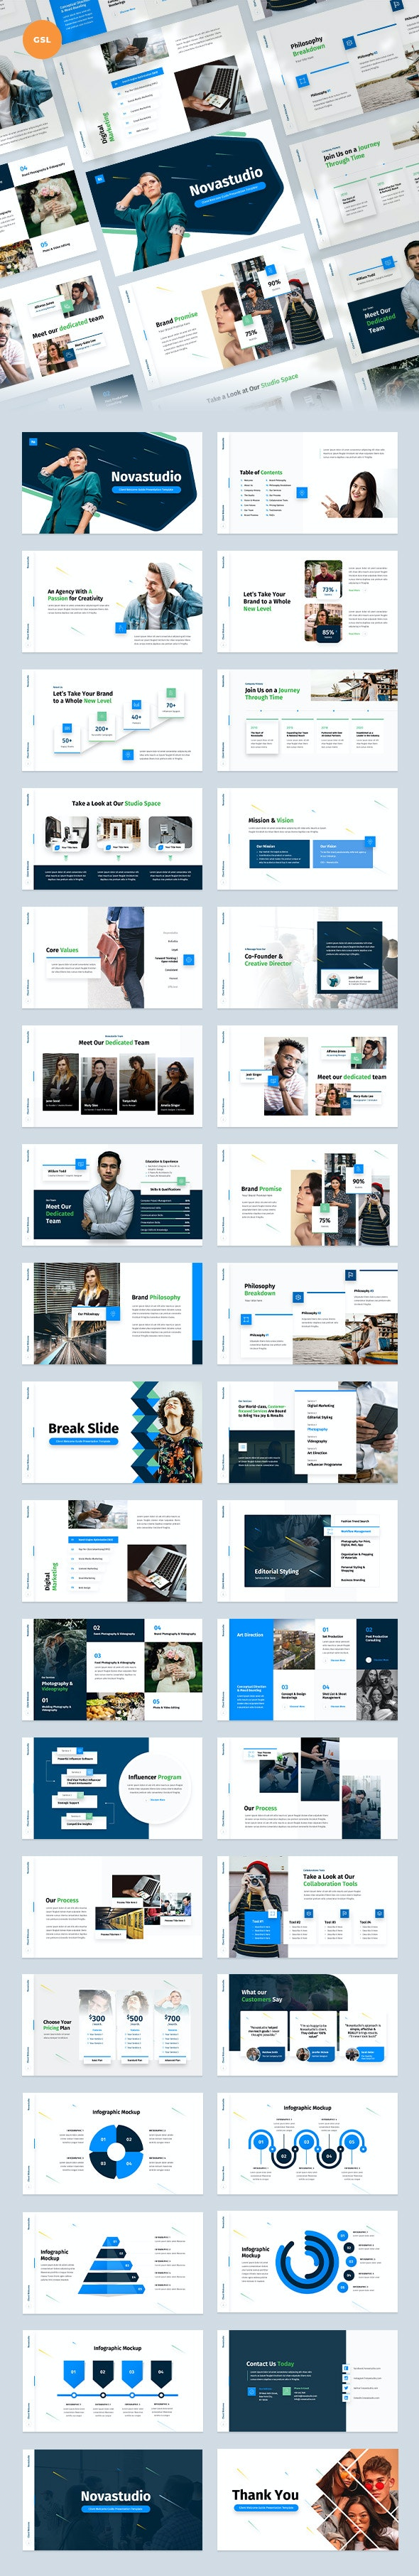 Client Welcome Guide Google Slides Presentation Template - Google Slides Presentation Templates